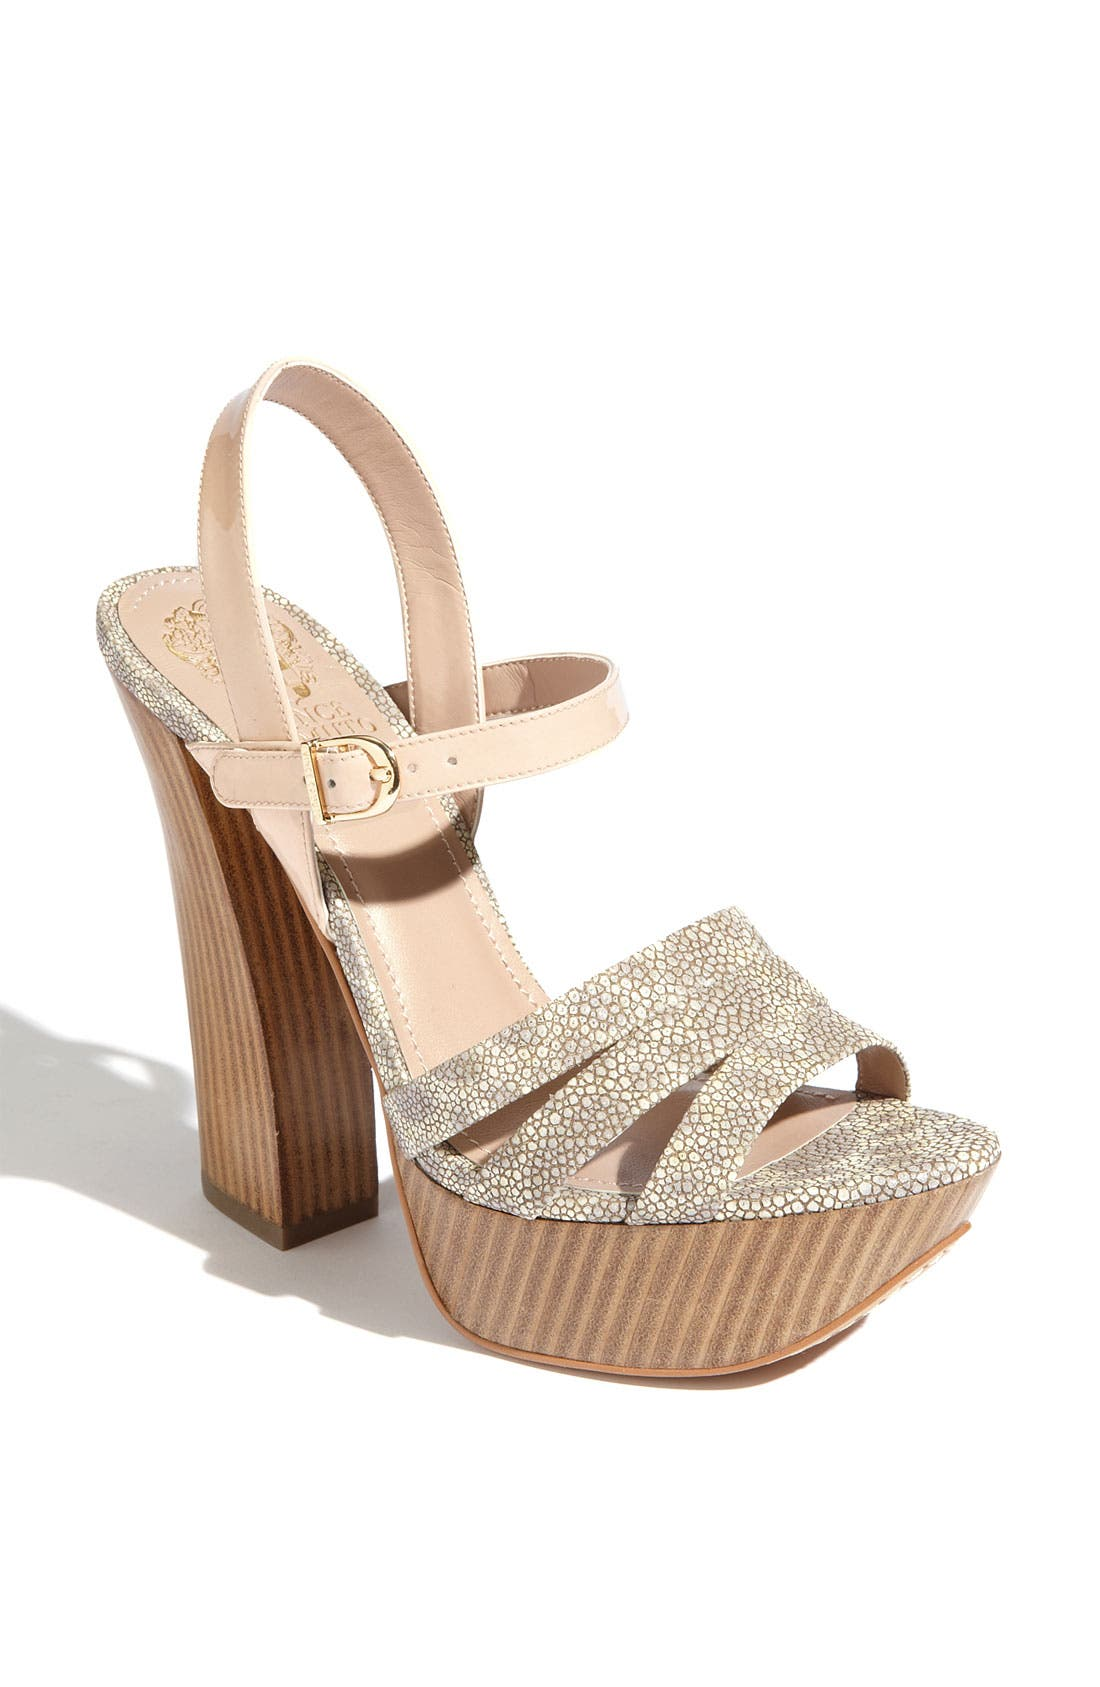 Alternate Image 1 Selected - Vince Camuto 'Miner' Sandal